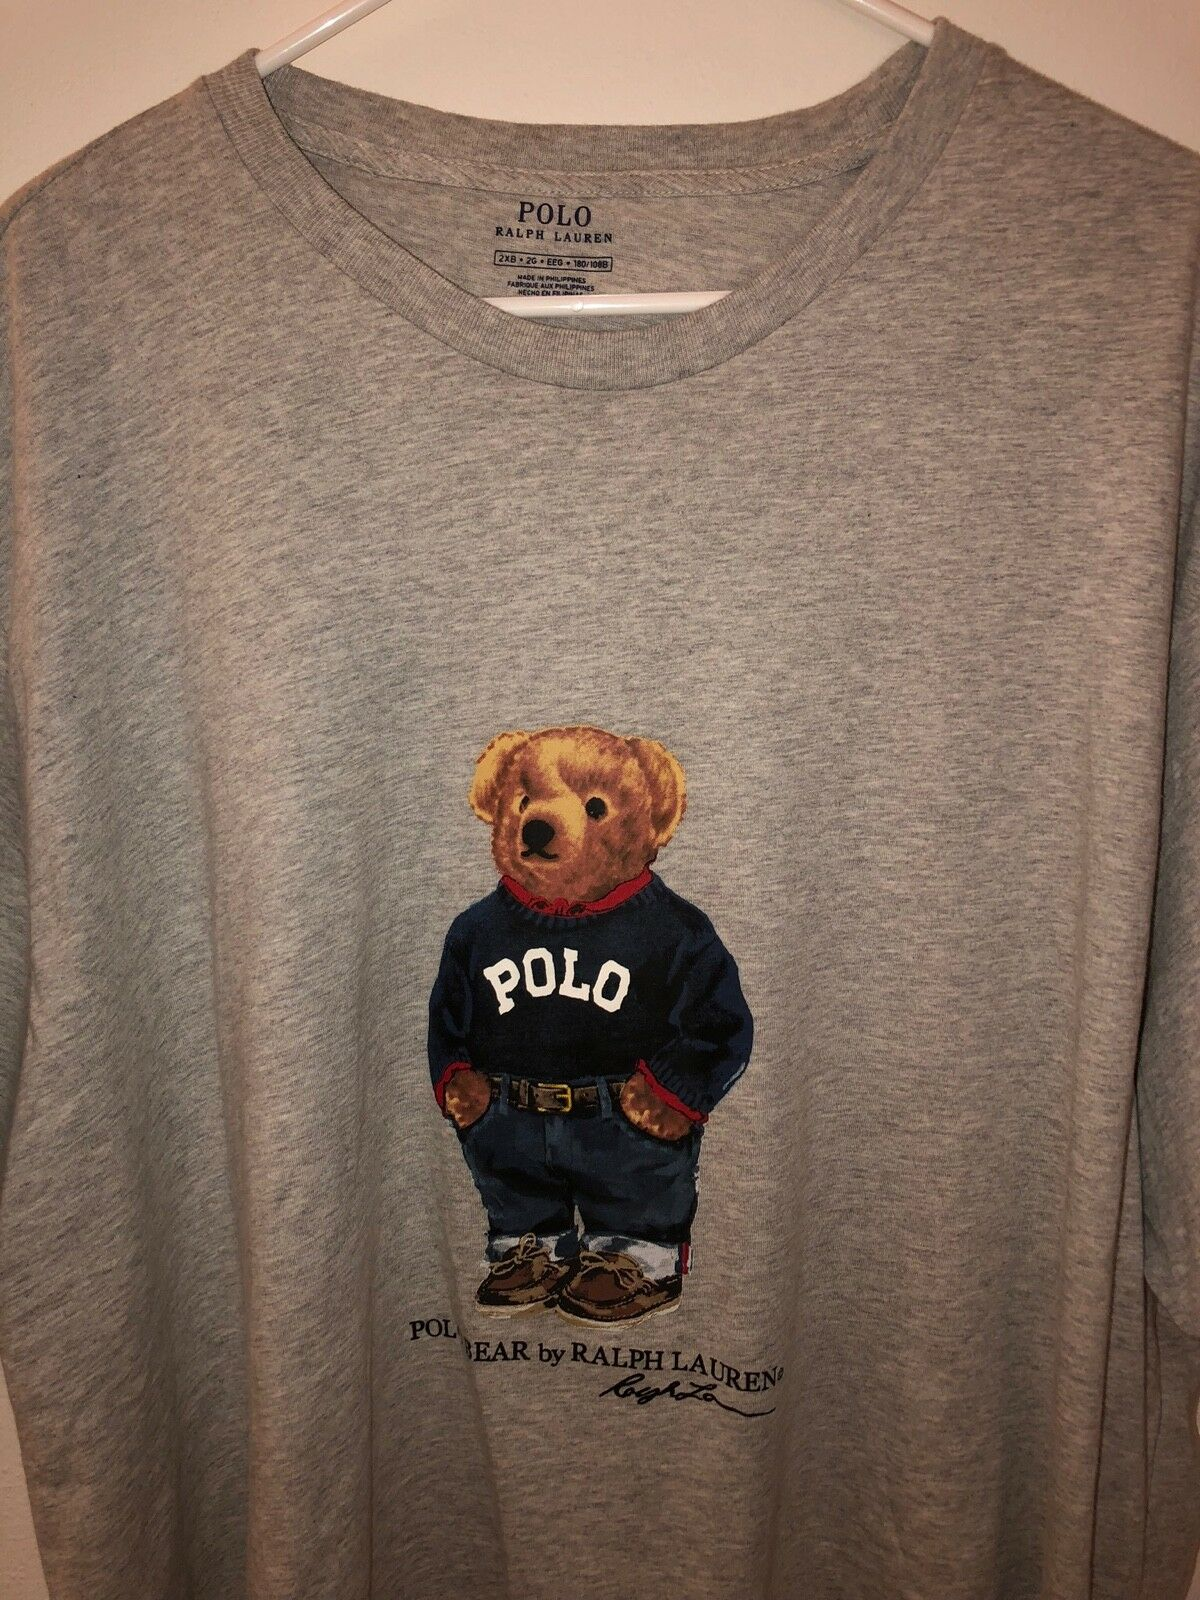 Polo Bear by Ralph Lauren Graphic T-Shirt Men Big & Tall Sizes NWT